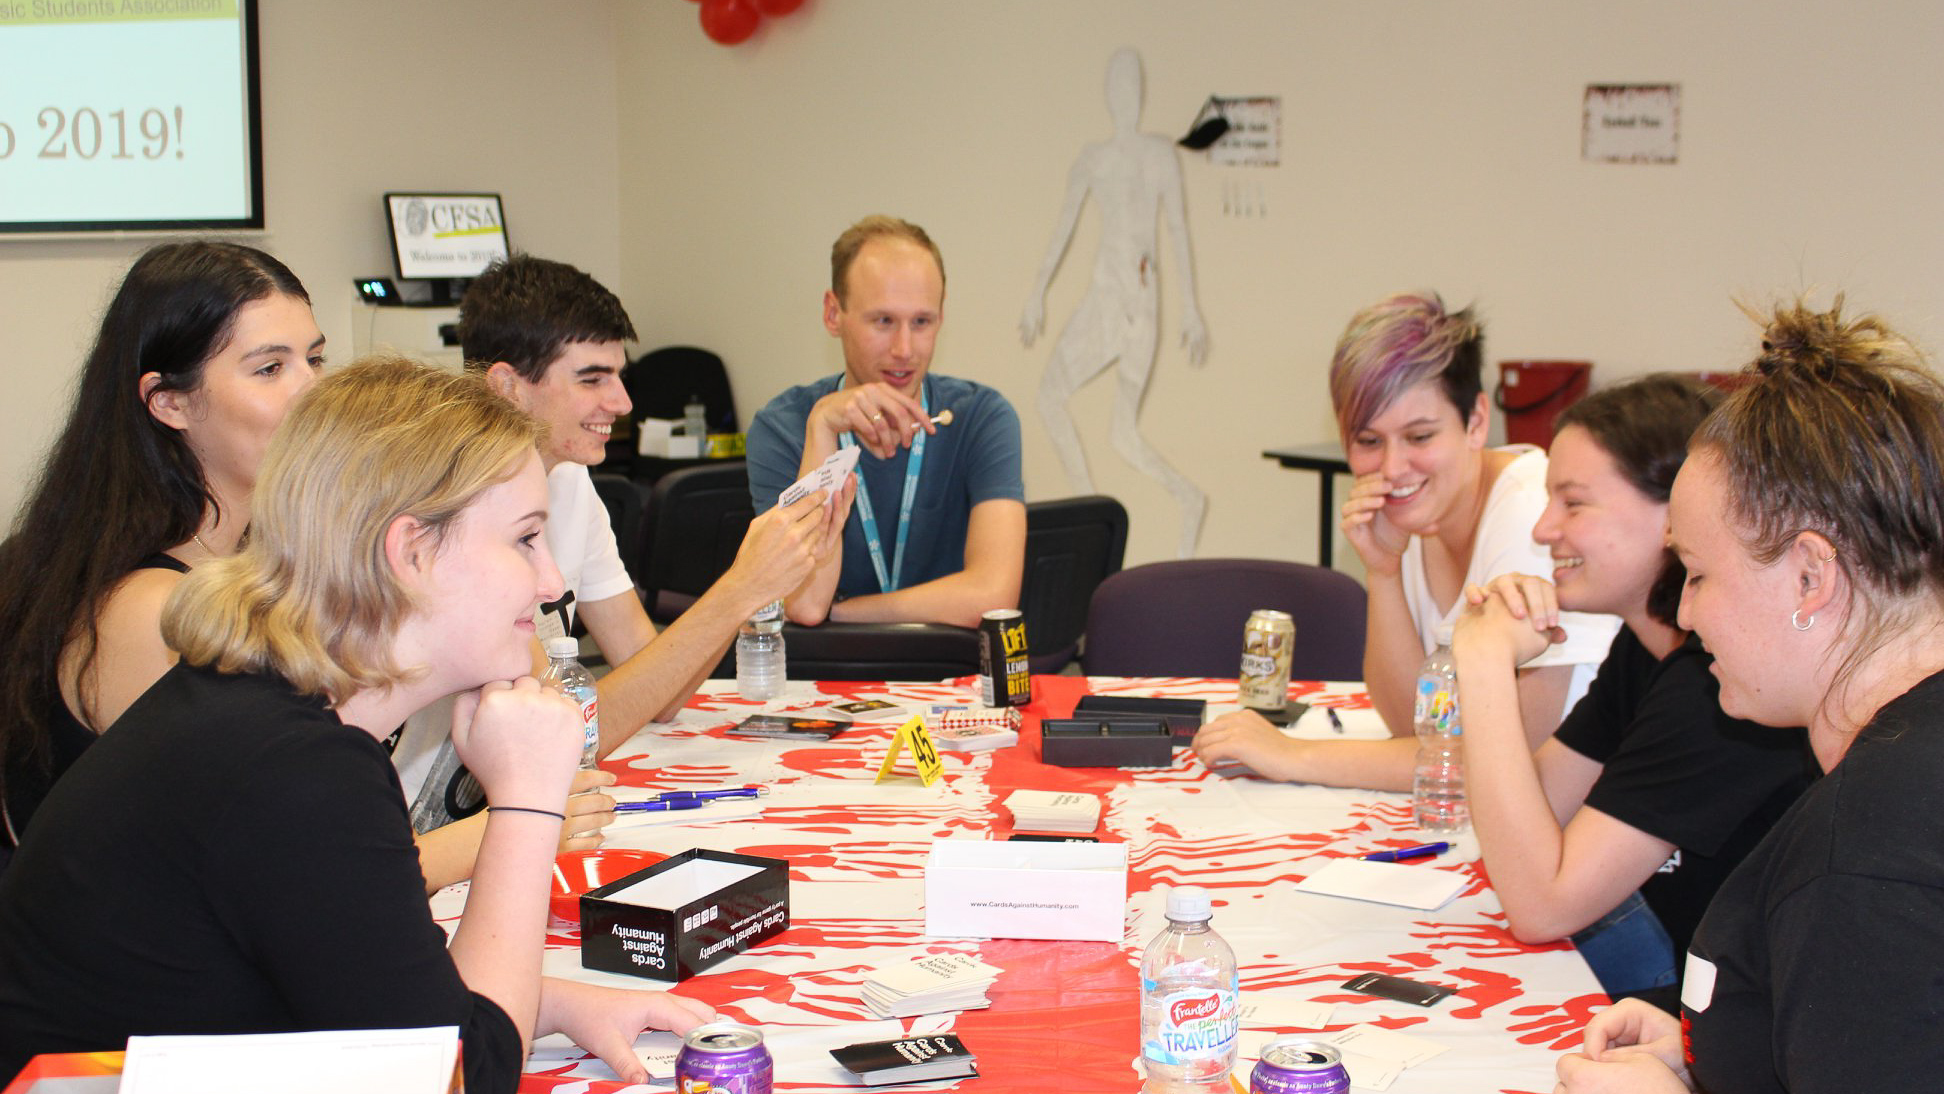 Canberra Forensic Students' Association members play Cards Against Humanity